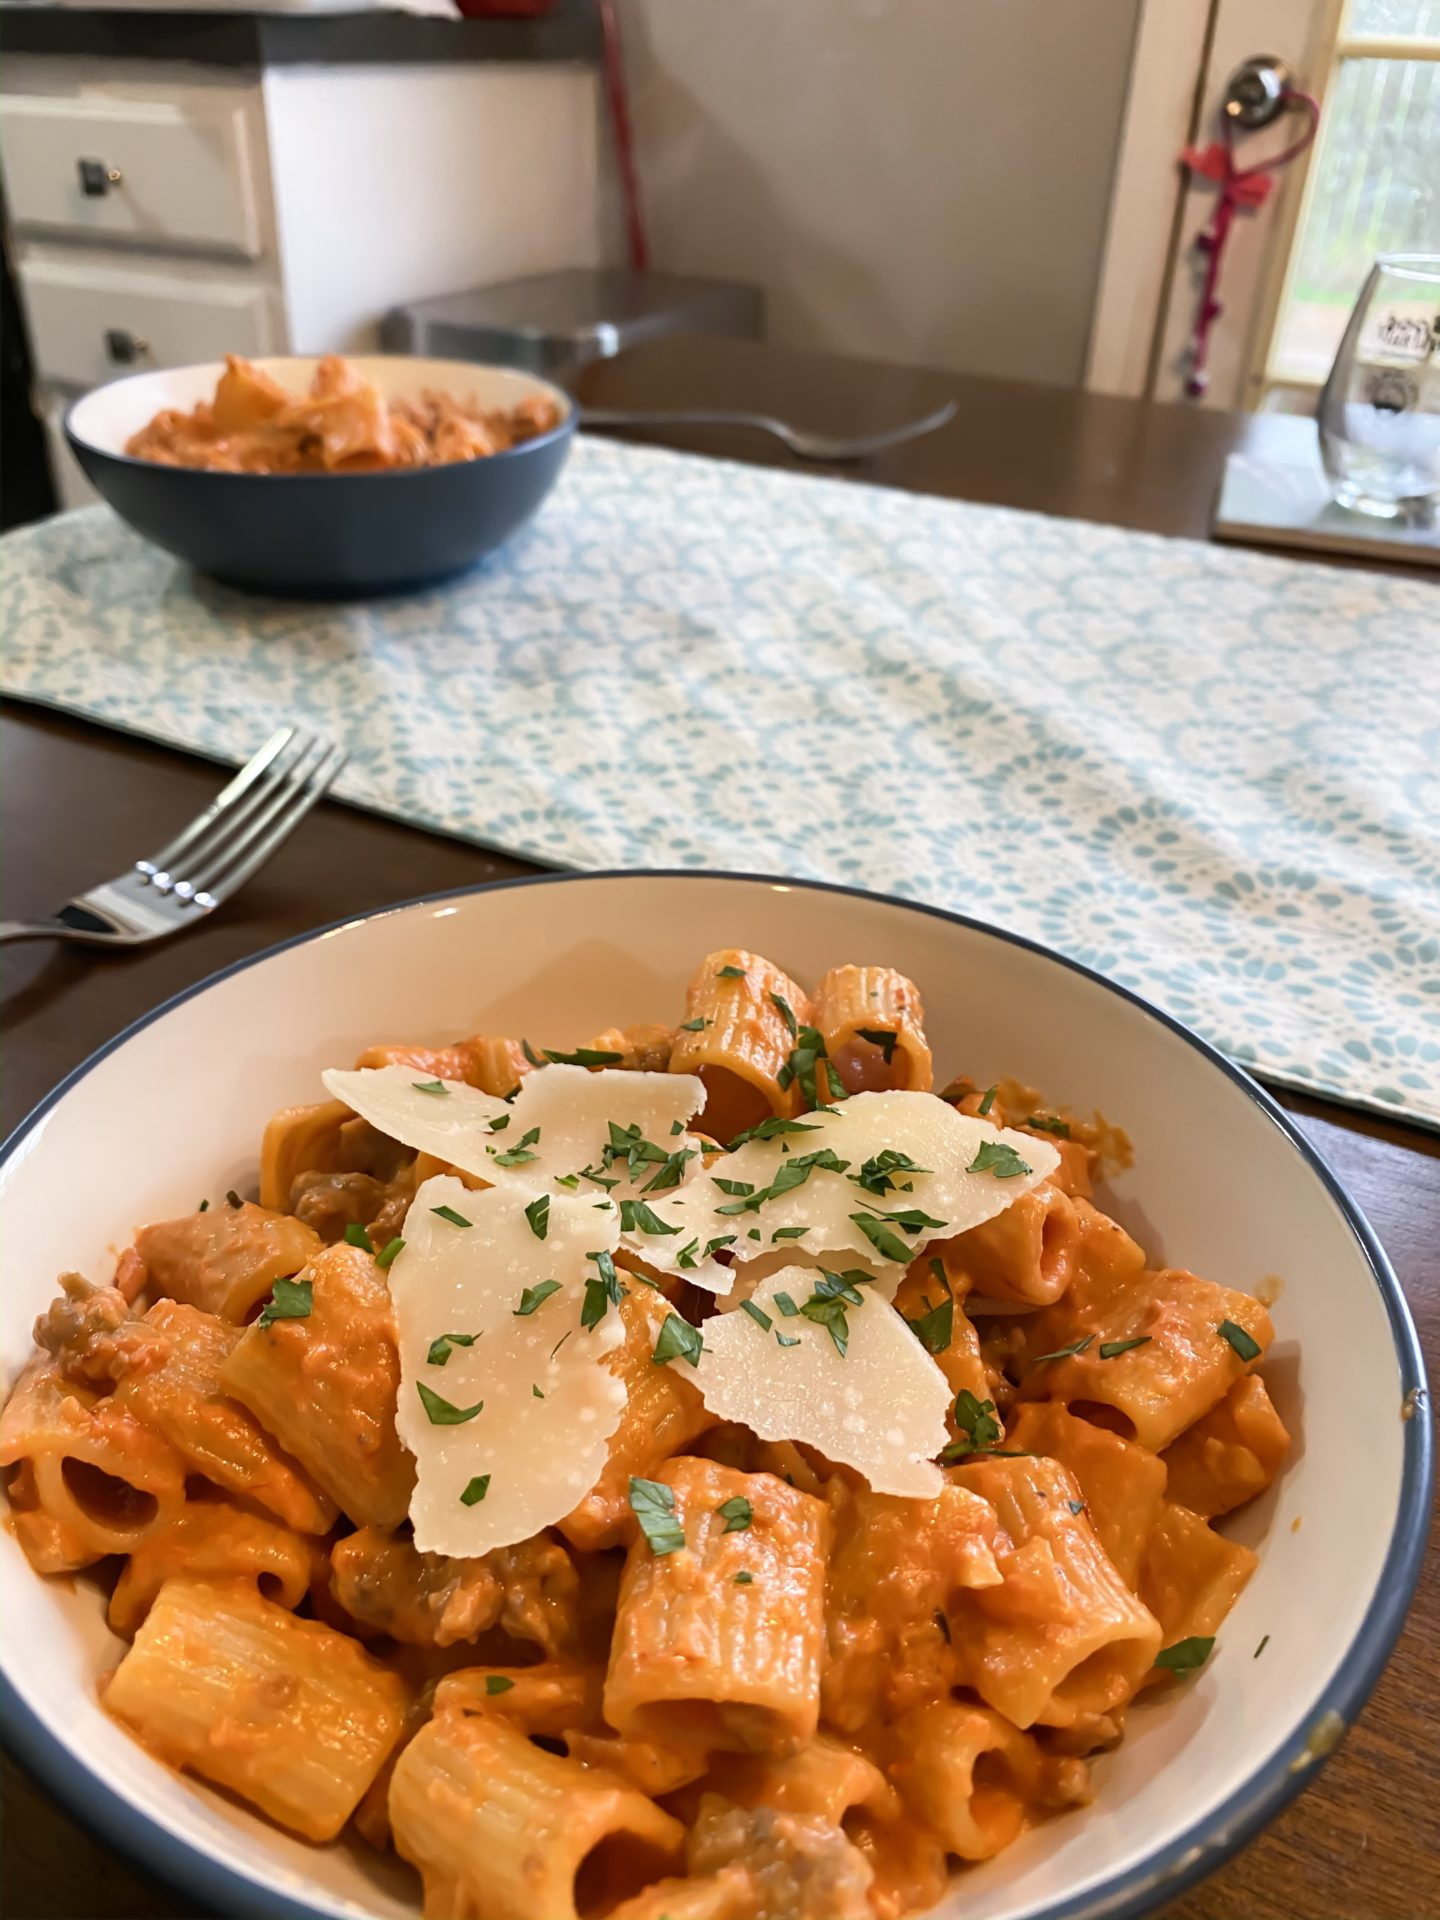 pasta in a vodka cream sauce with cheese on top